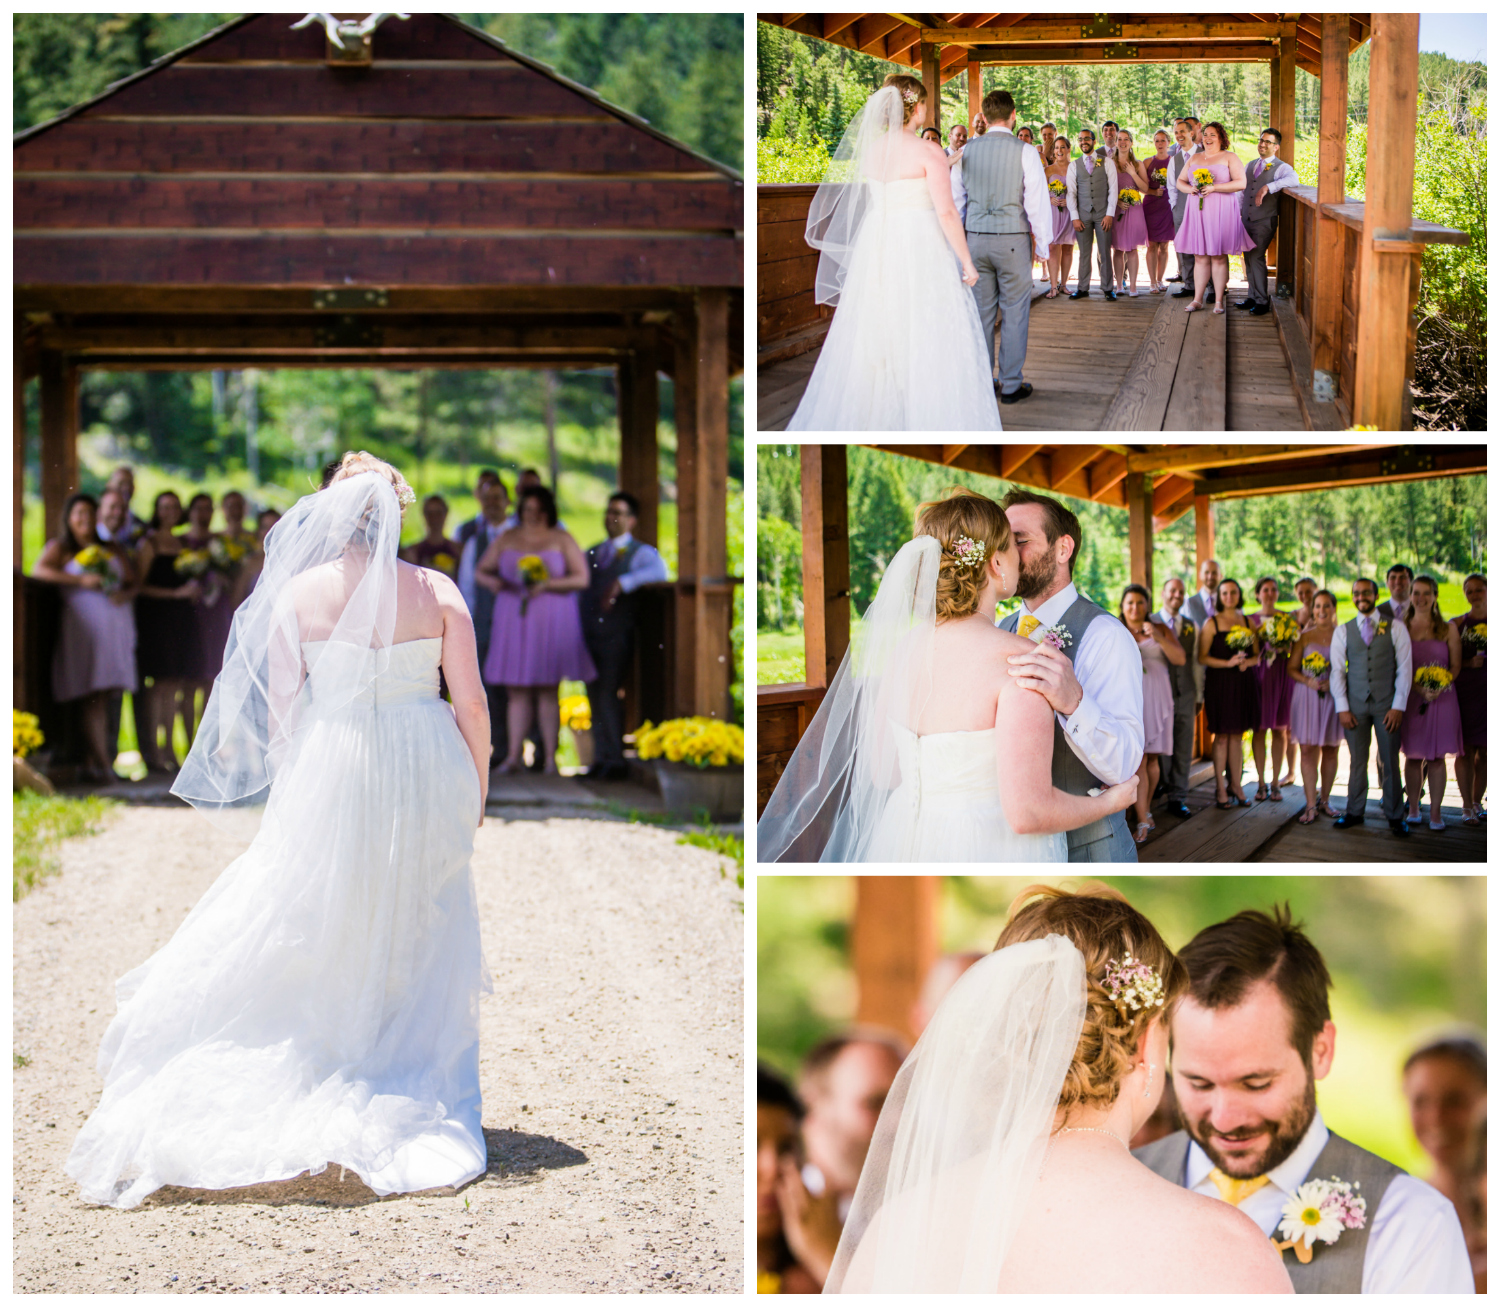 Bride and groom's first look at their Deer Creak Valley Ranch Wedding. Photographed by JMGant Photography.